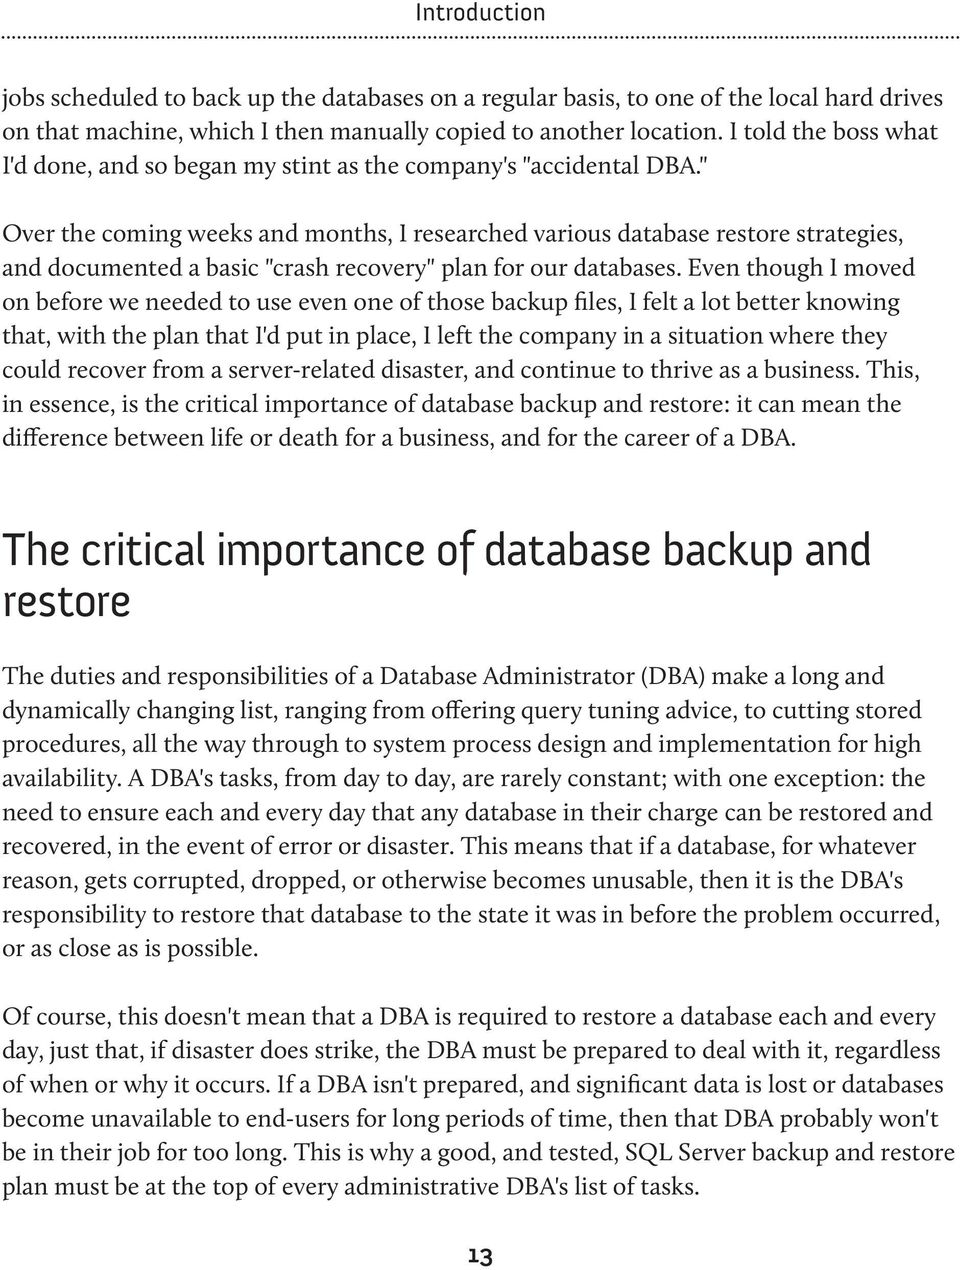 """ Over the coming weeks and months, I researched various database restore strategies, and documented a basic ""crash recovery"" plan for our databases."